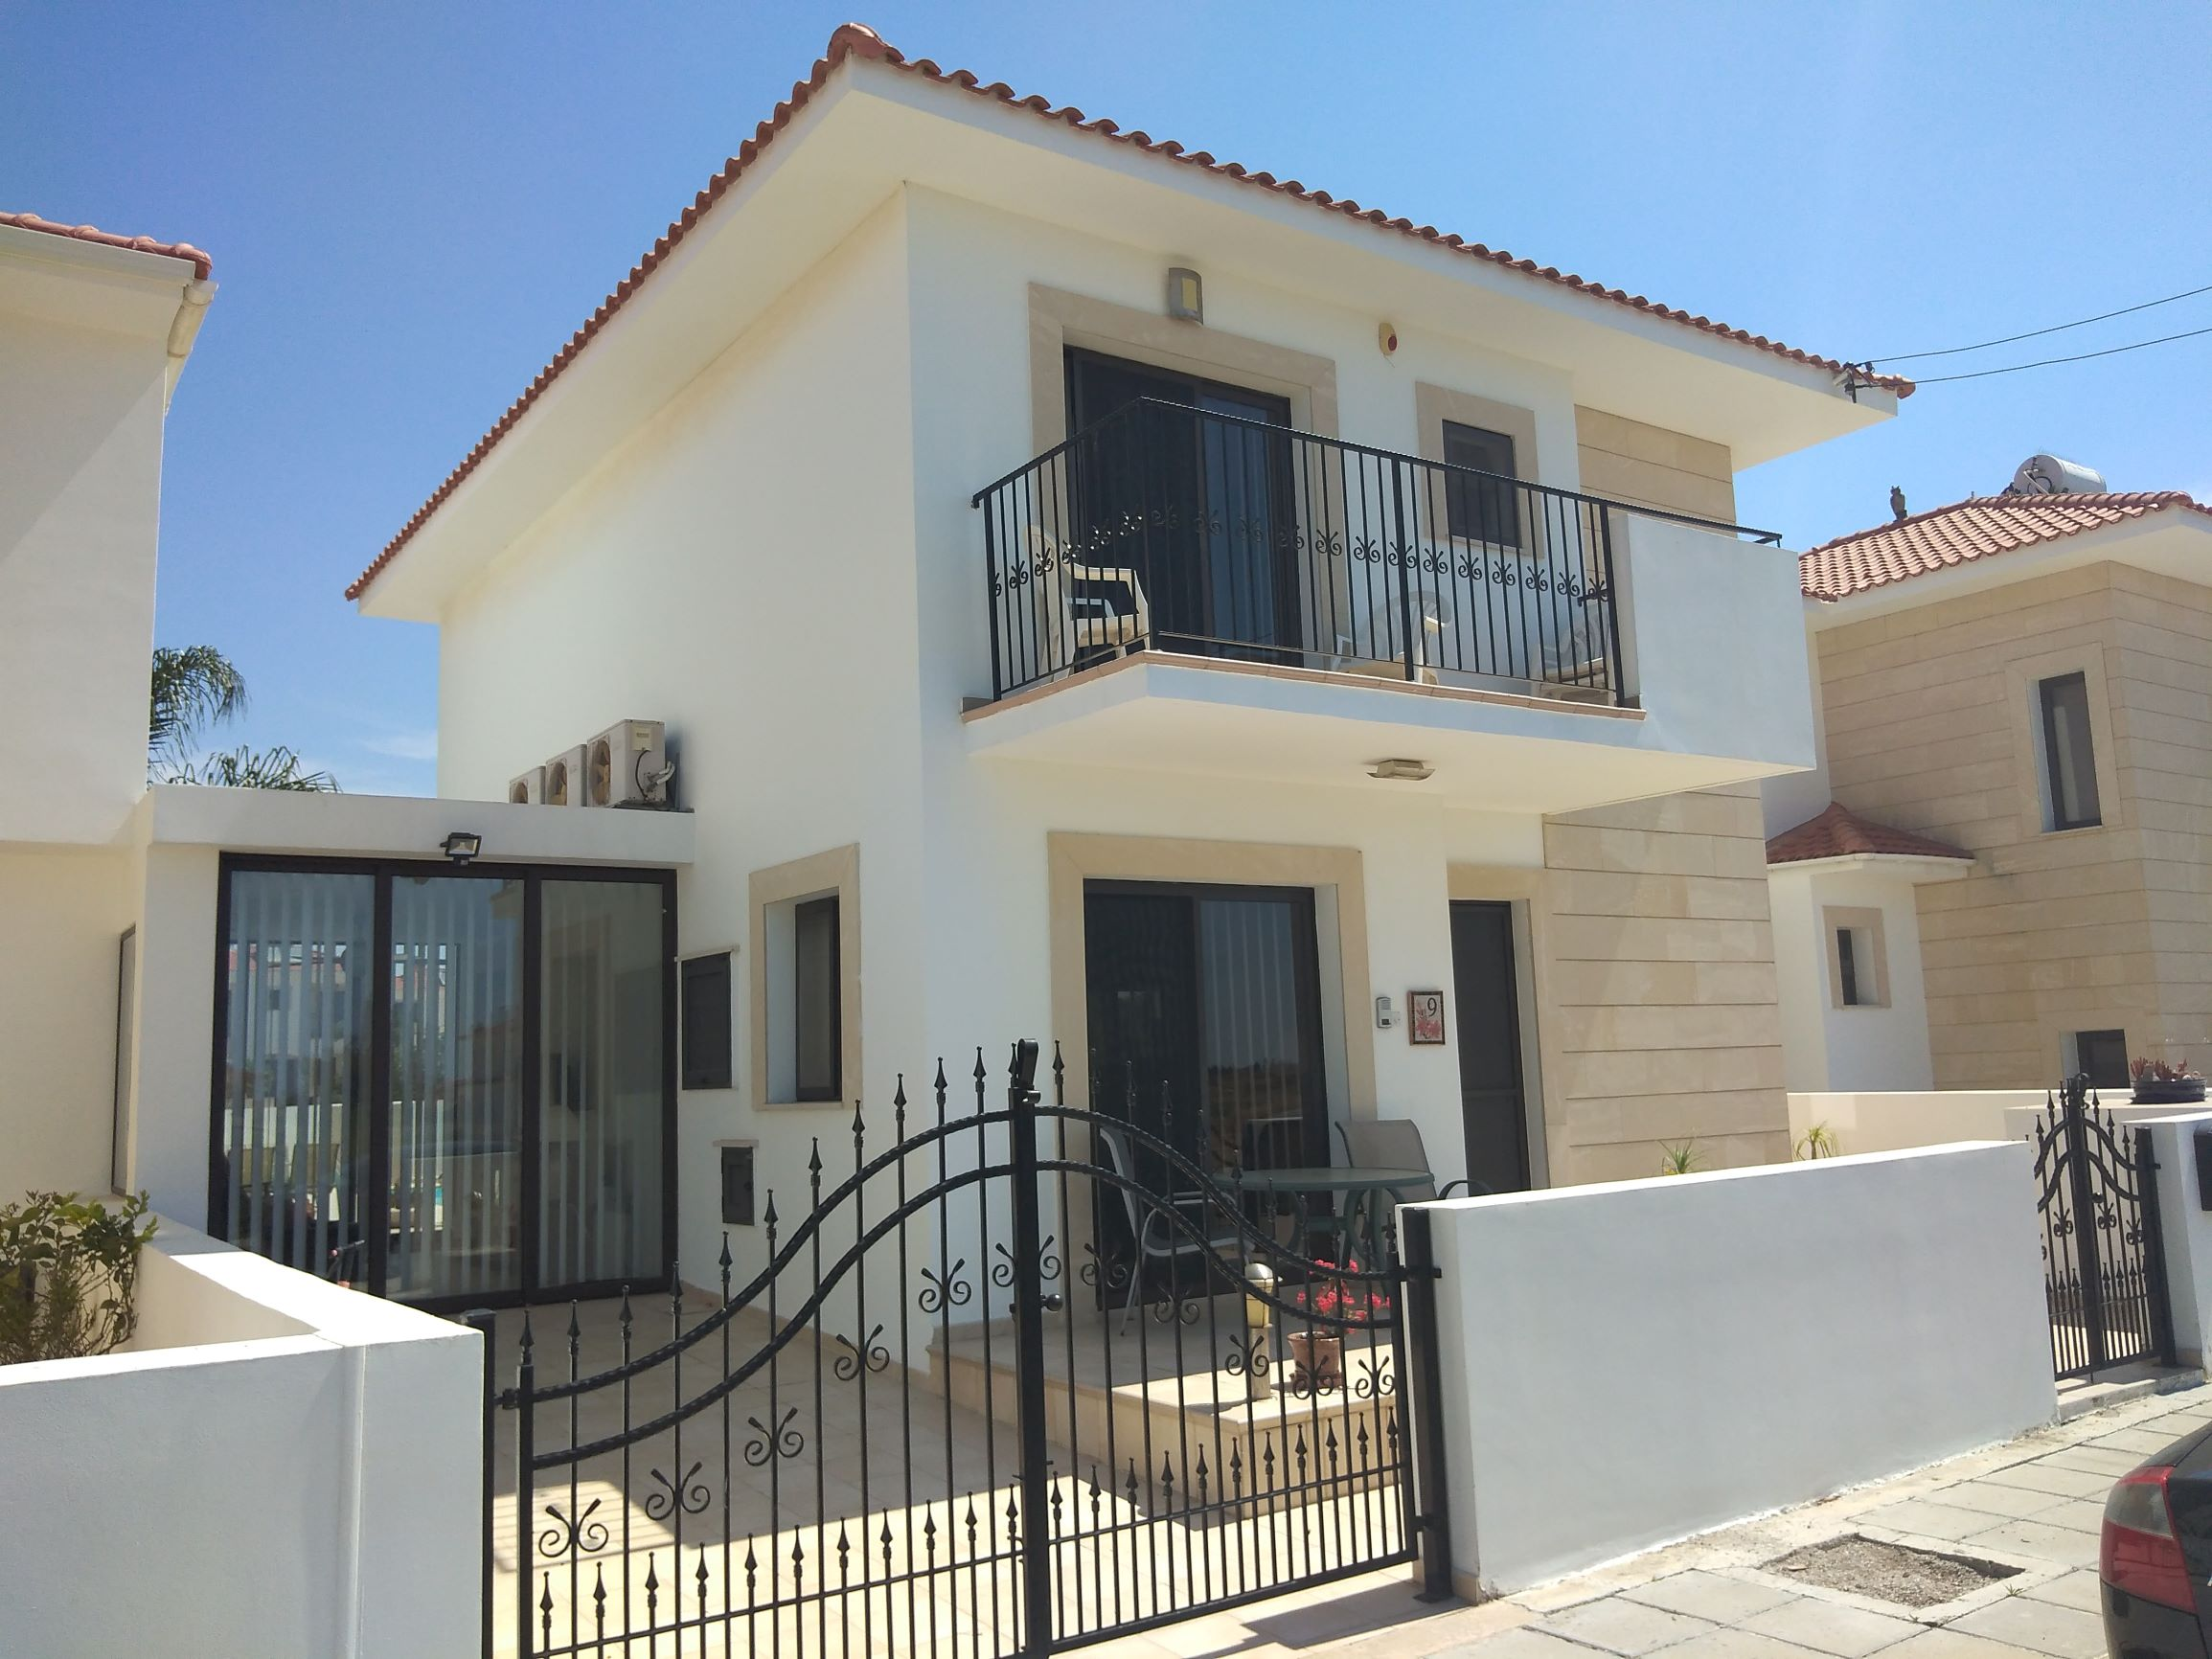 3 bedroom detached villa with swimming pool